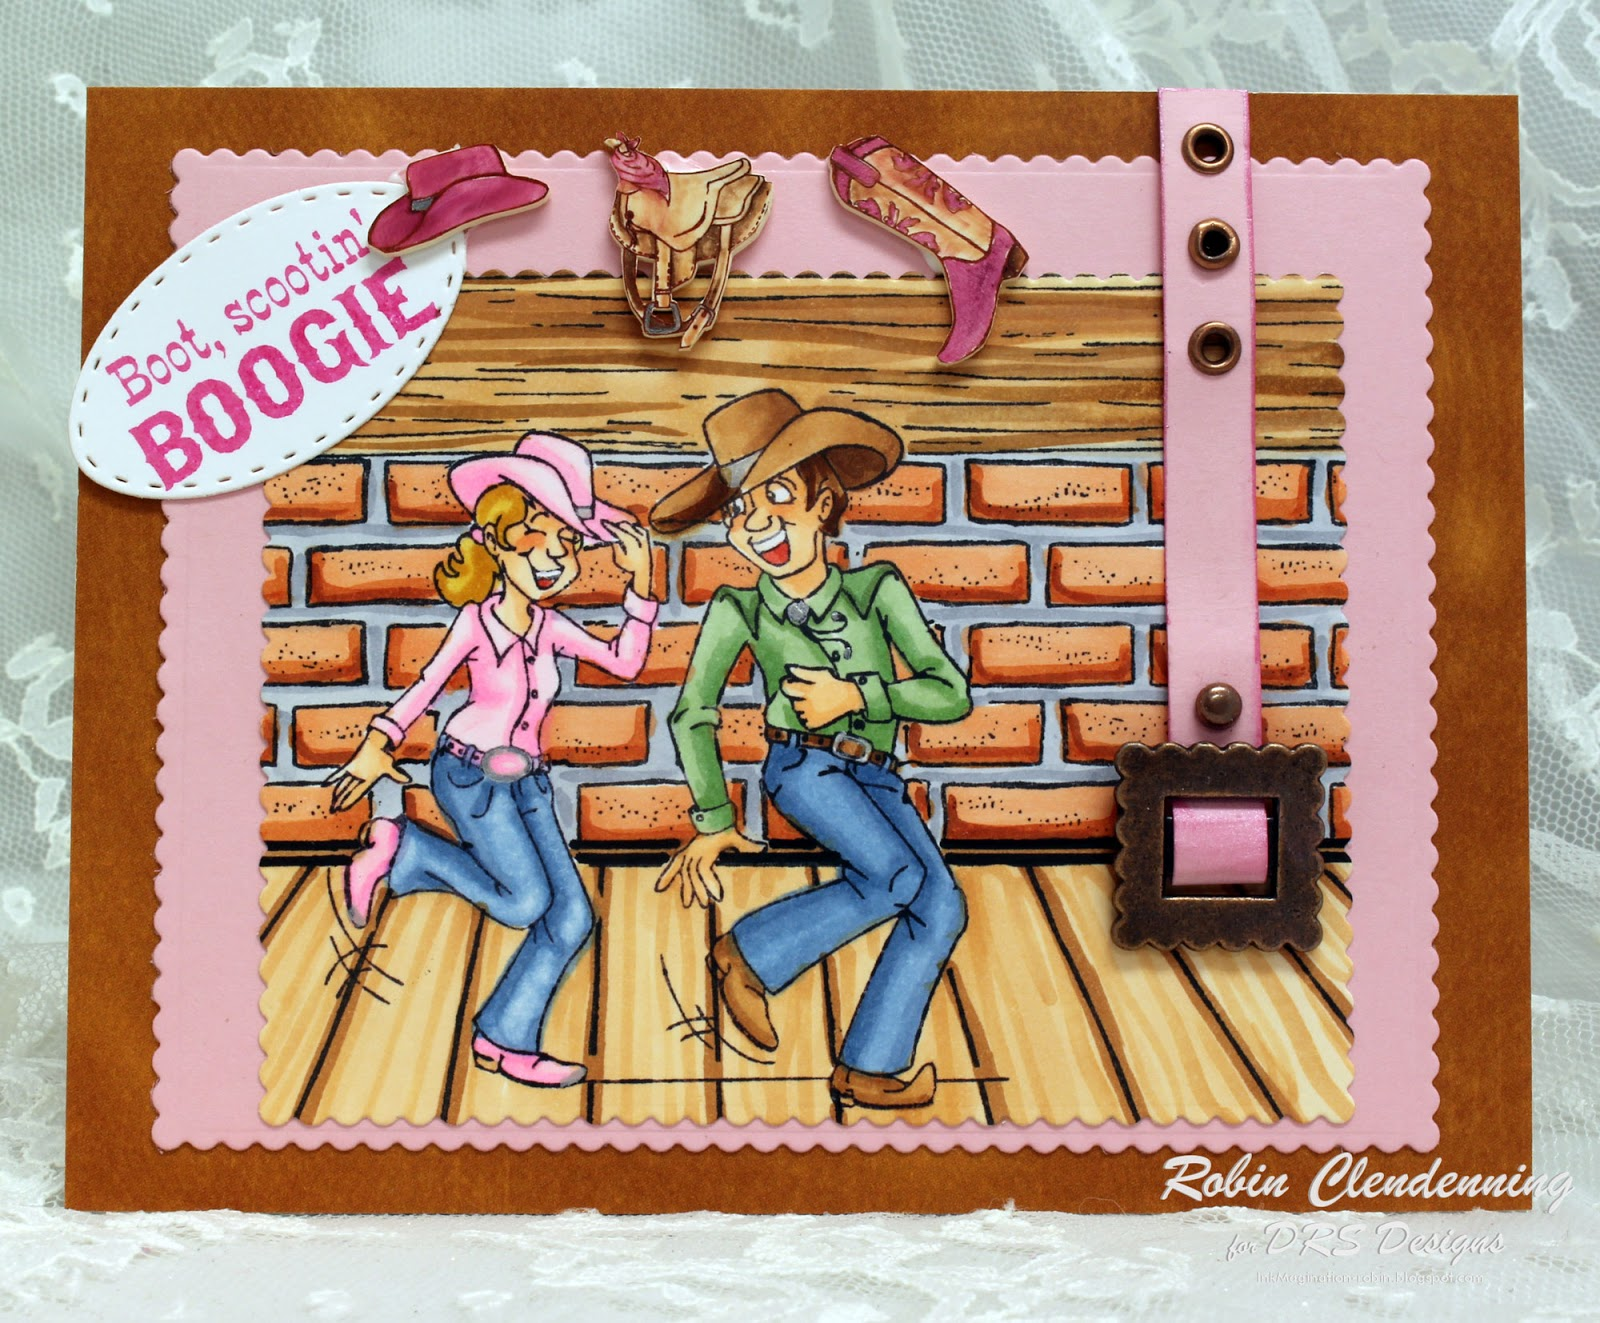 Western Dancing Couple Rubber Stamp by DRS Designs Rubber Stamps